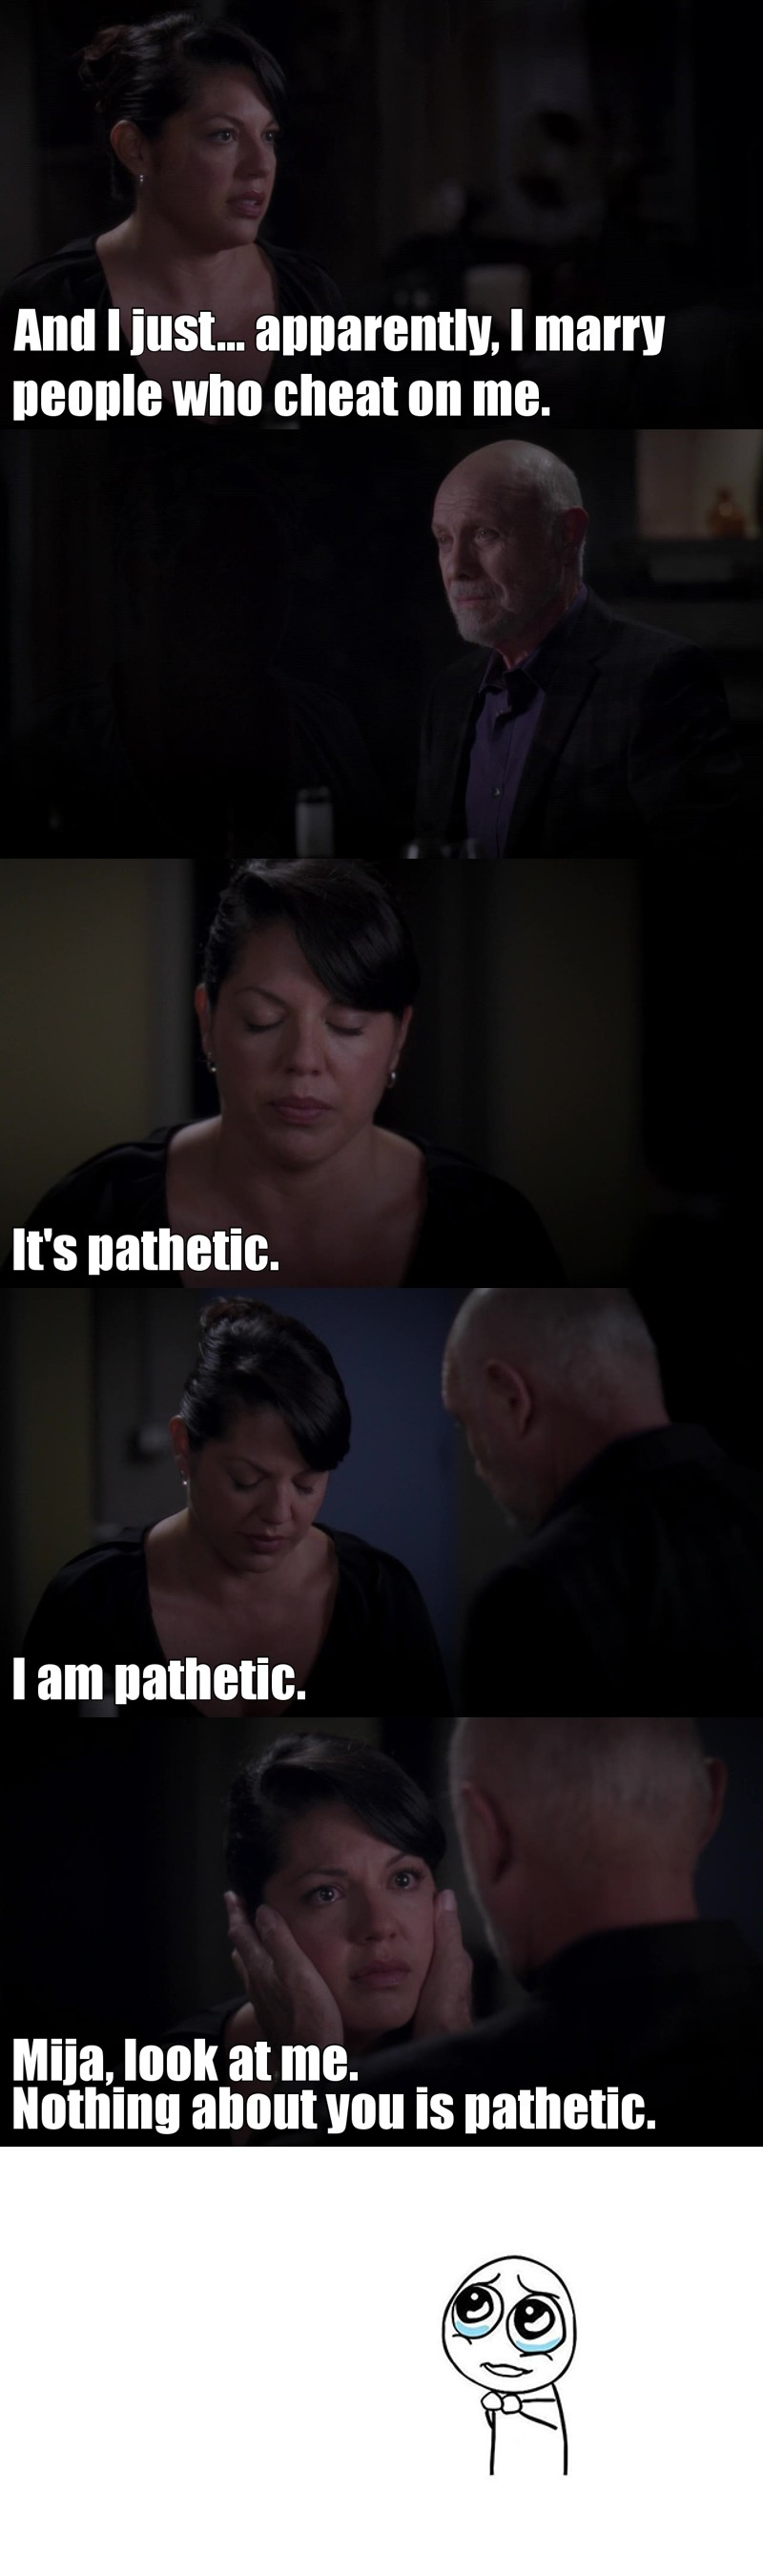 CALLIE YOU ARE A SNOWFLAKE ANGEL TO GOOD FOR THIS WORD QUEEN ROCKSTAR! ily